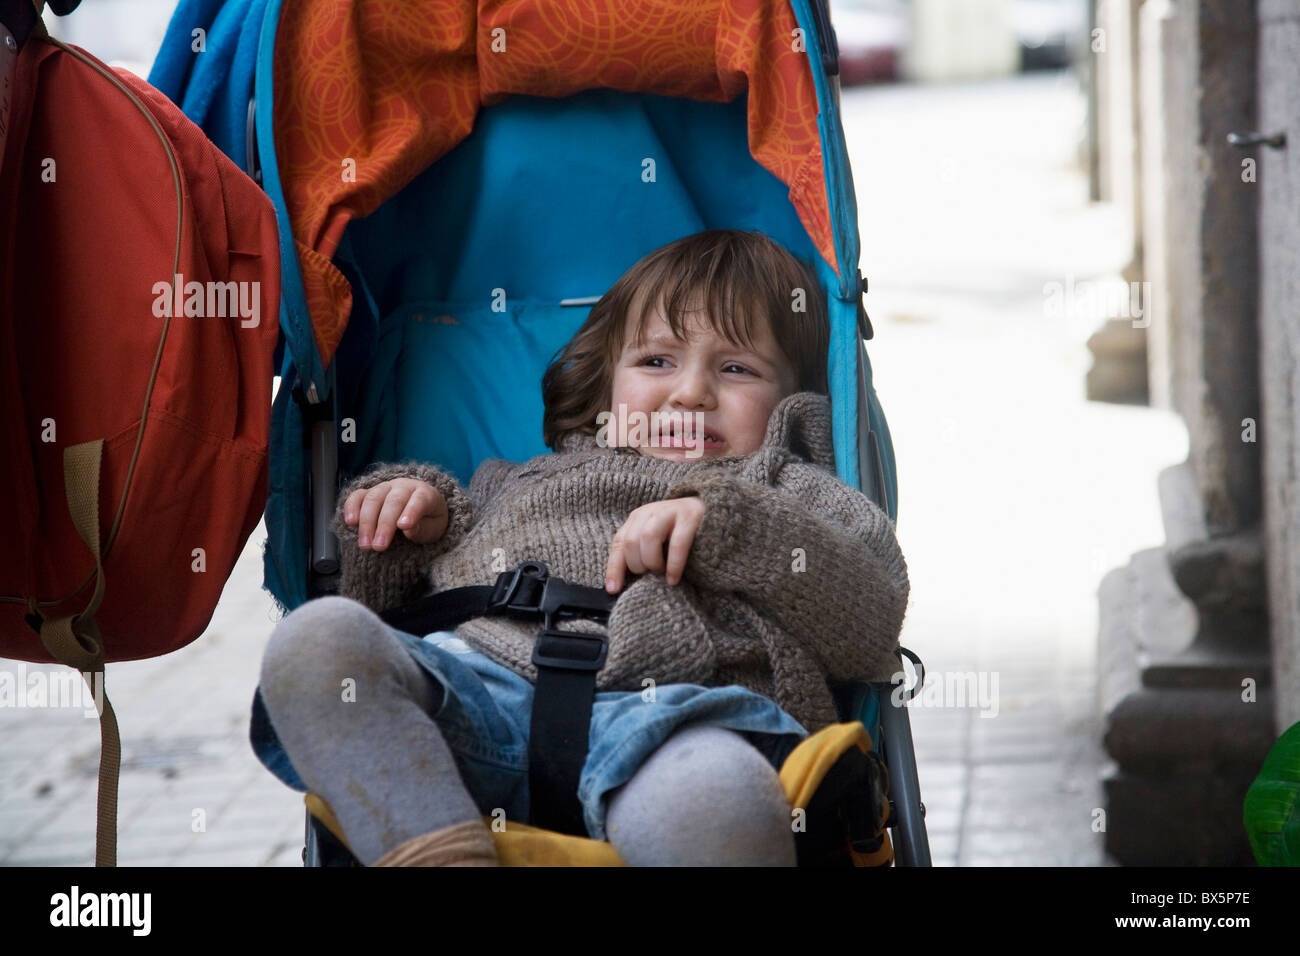 aad0cbe52ca3 Child Crying In Street Stock Photos   Child Crying In Street Stock ...